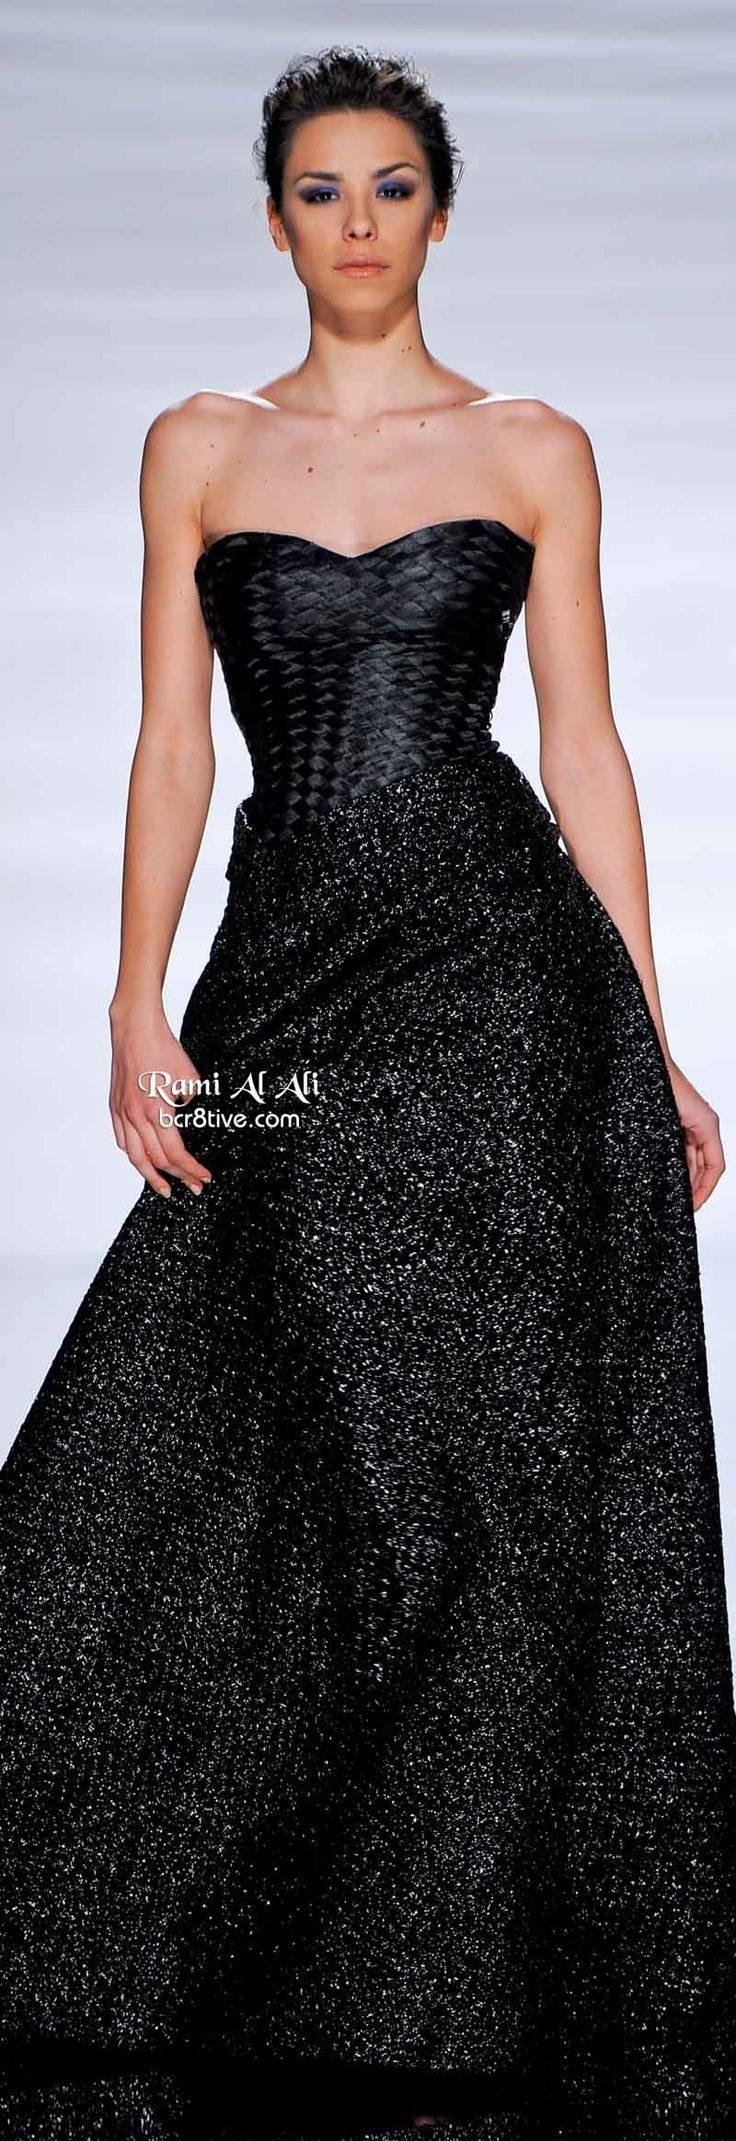 Rami Al Ali Spring 2011 | strapless | black | beaded | sequin-studded evening gown | couture